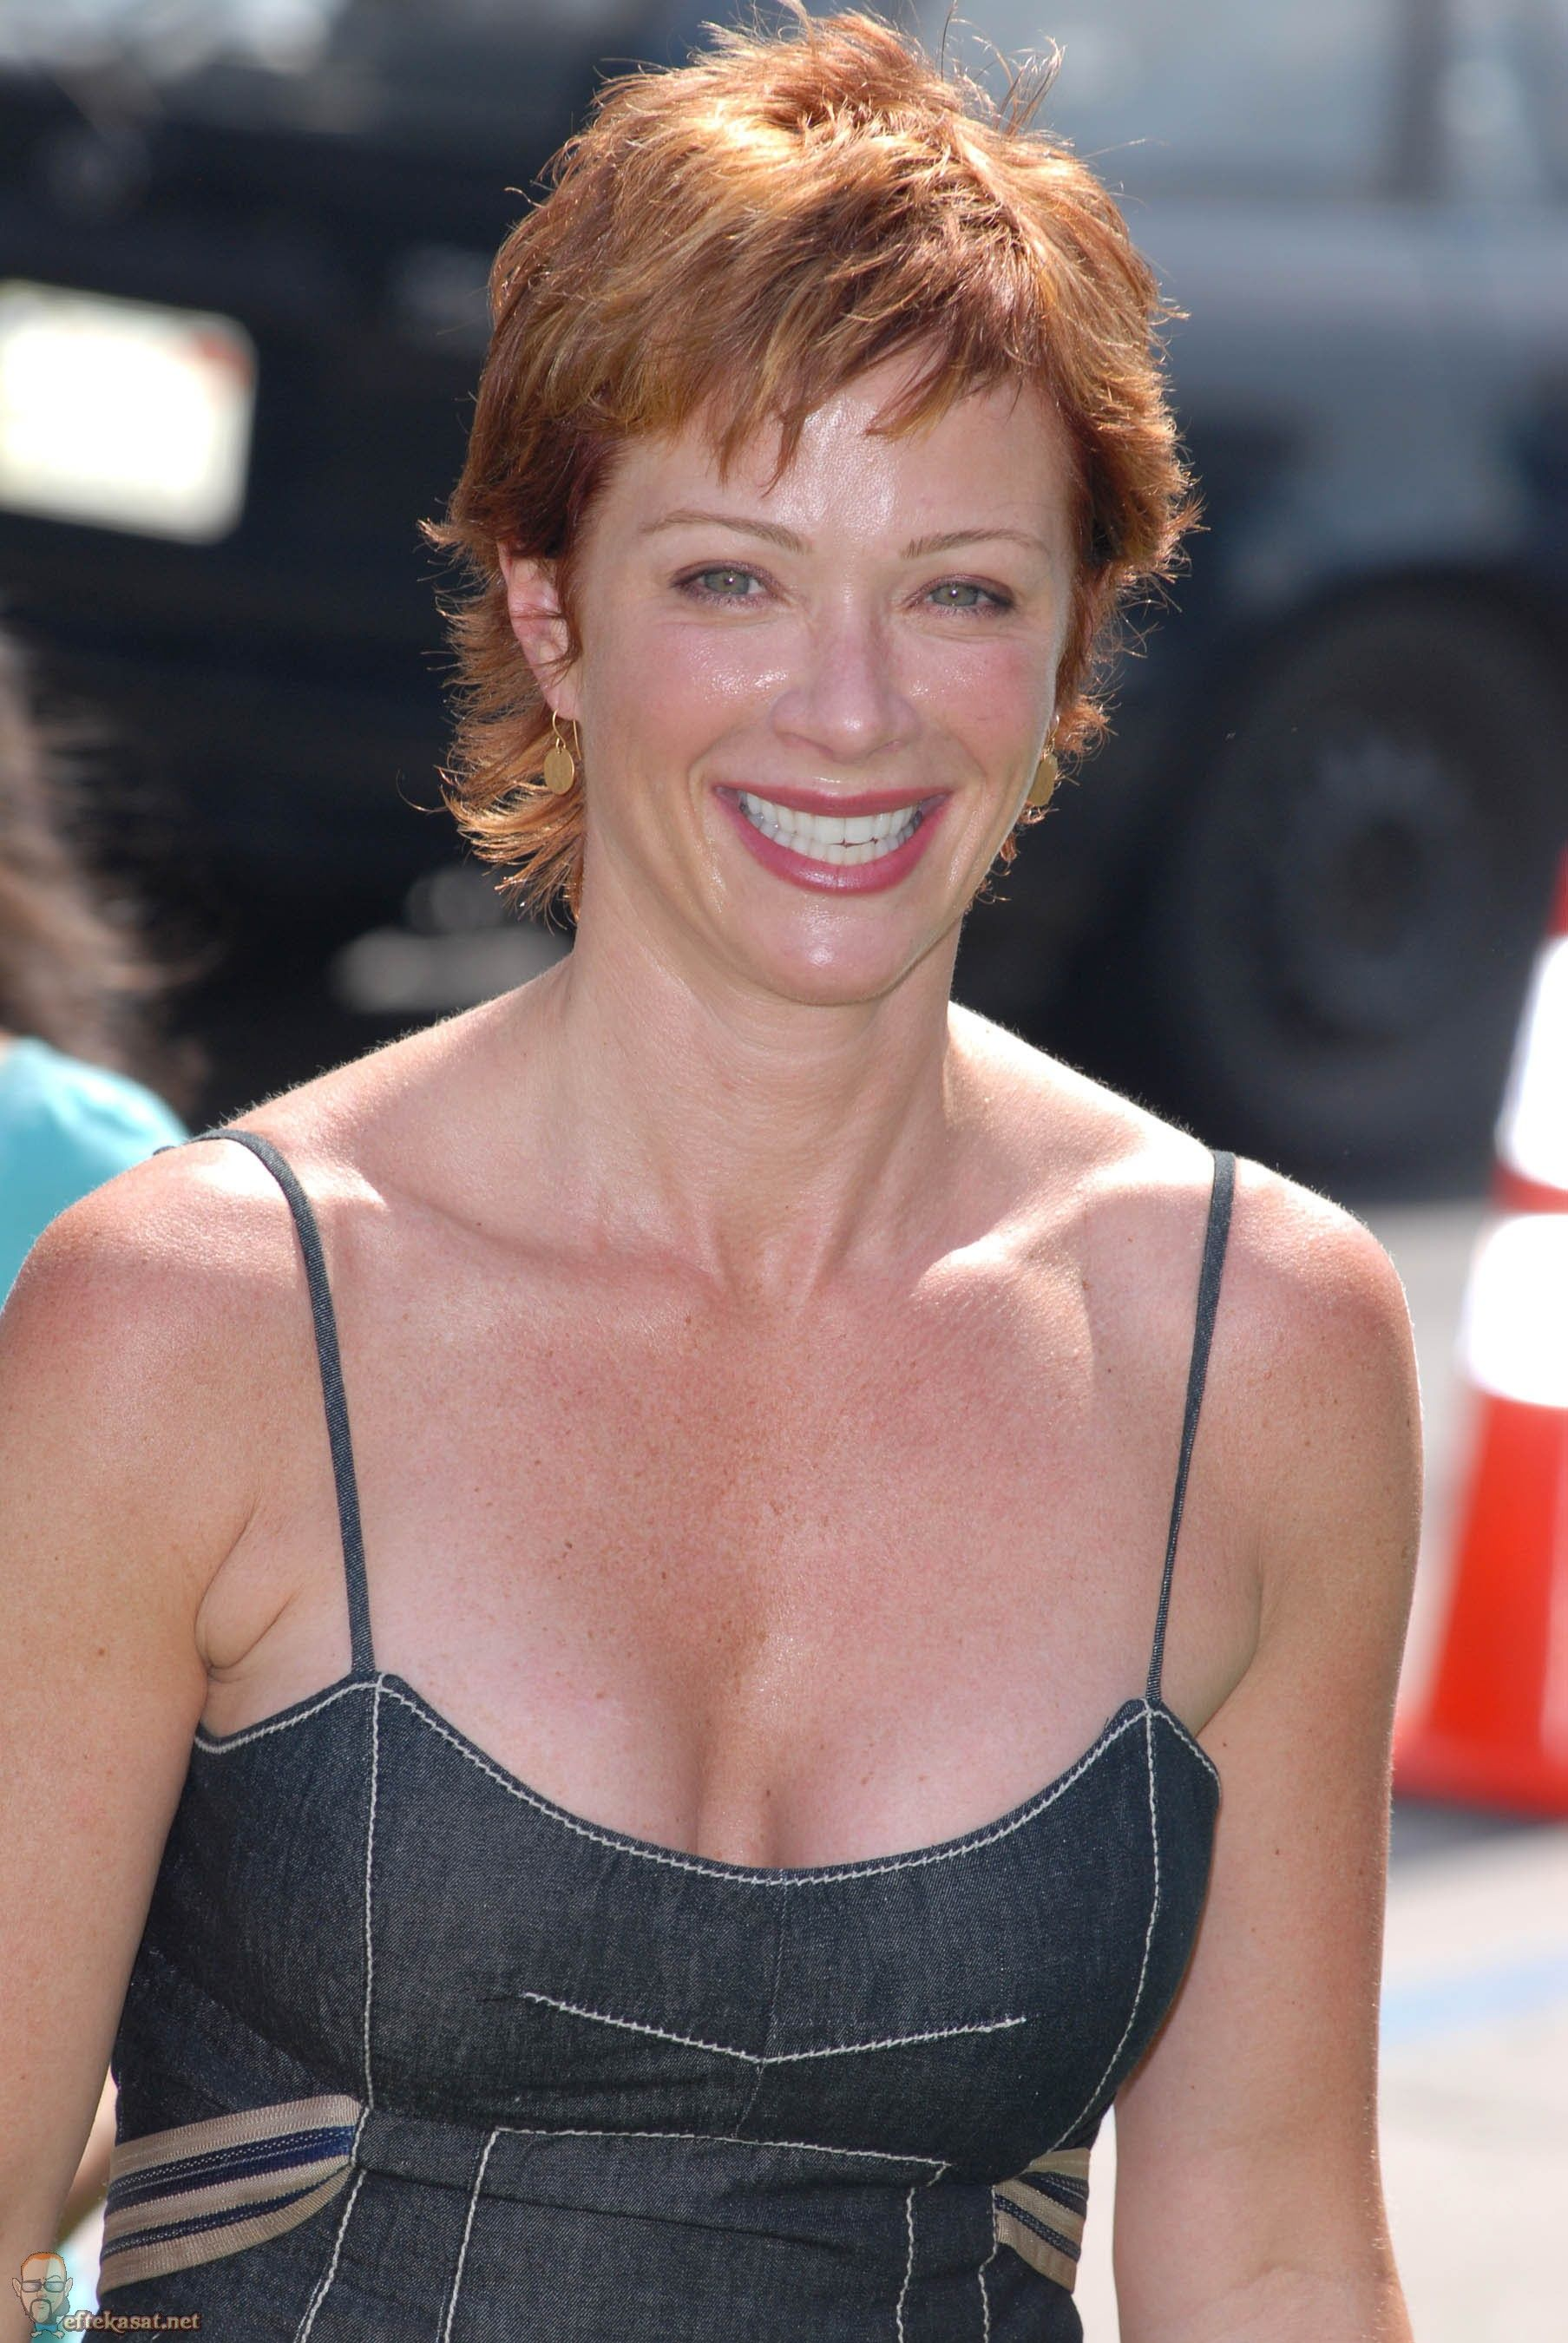 lauren holly instagramlauren holly 1994, lauren holly instagram, lauren holly wiki, lauren holly, lauren holly imdb, lauren holly ncis, lauren holly husband, lauren holly 2015